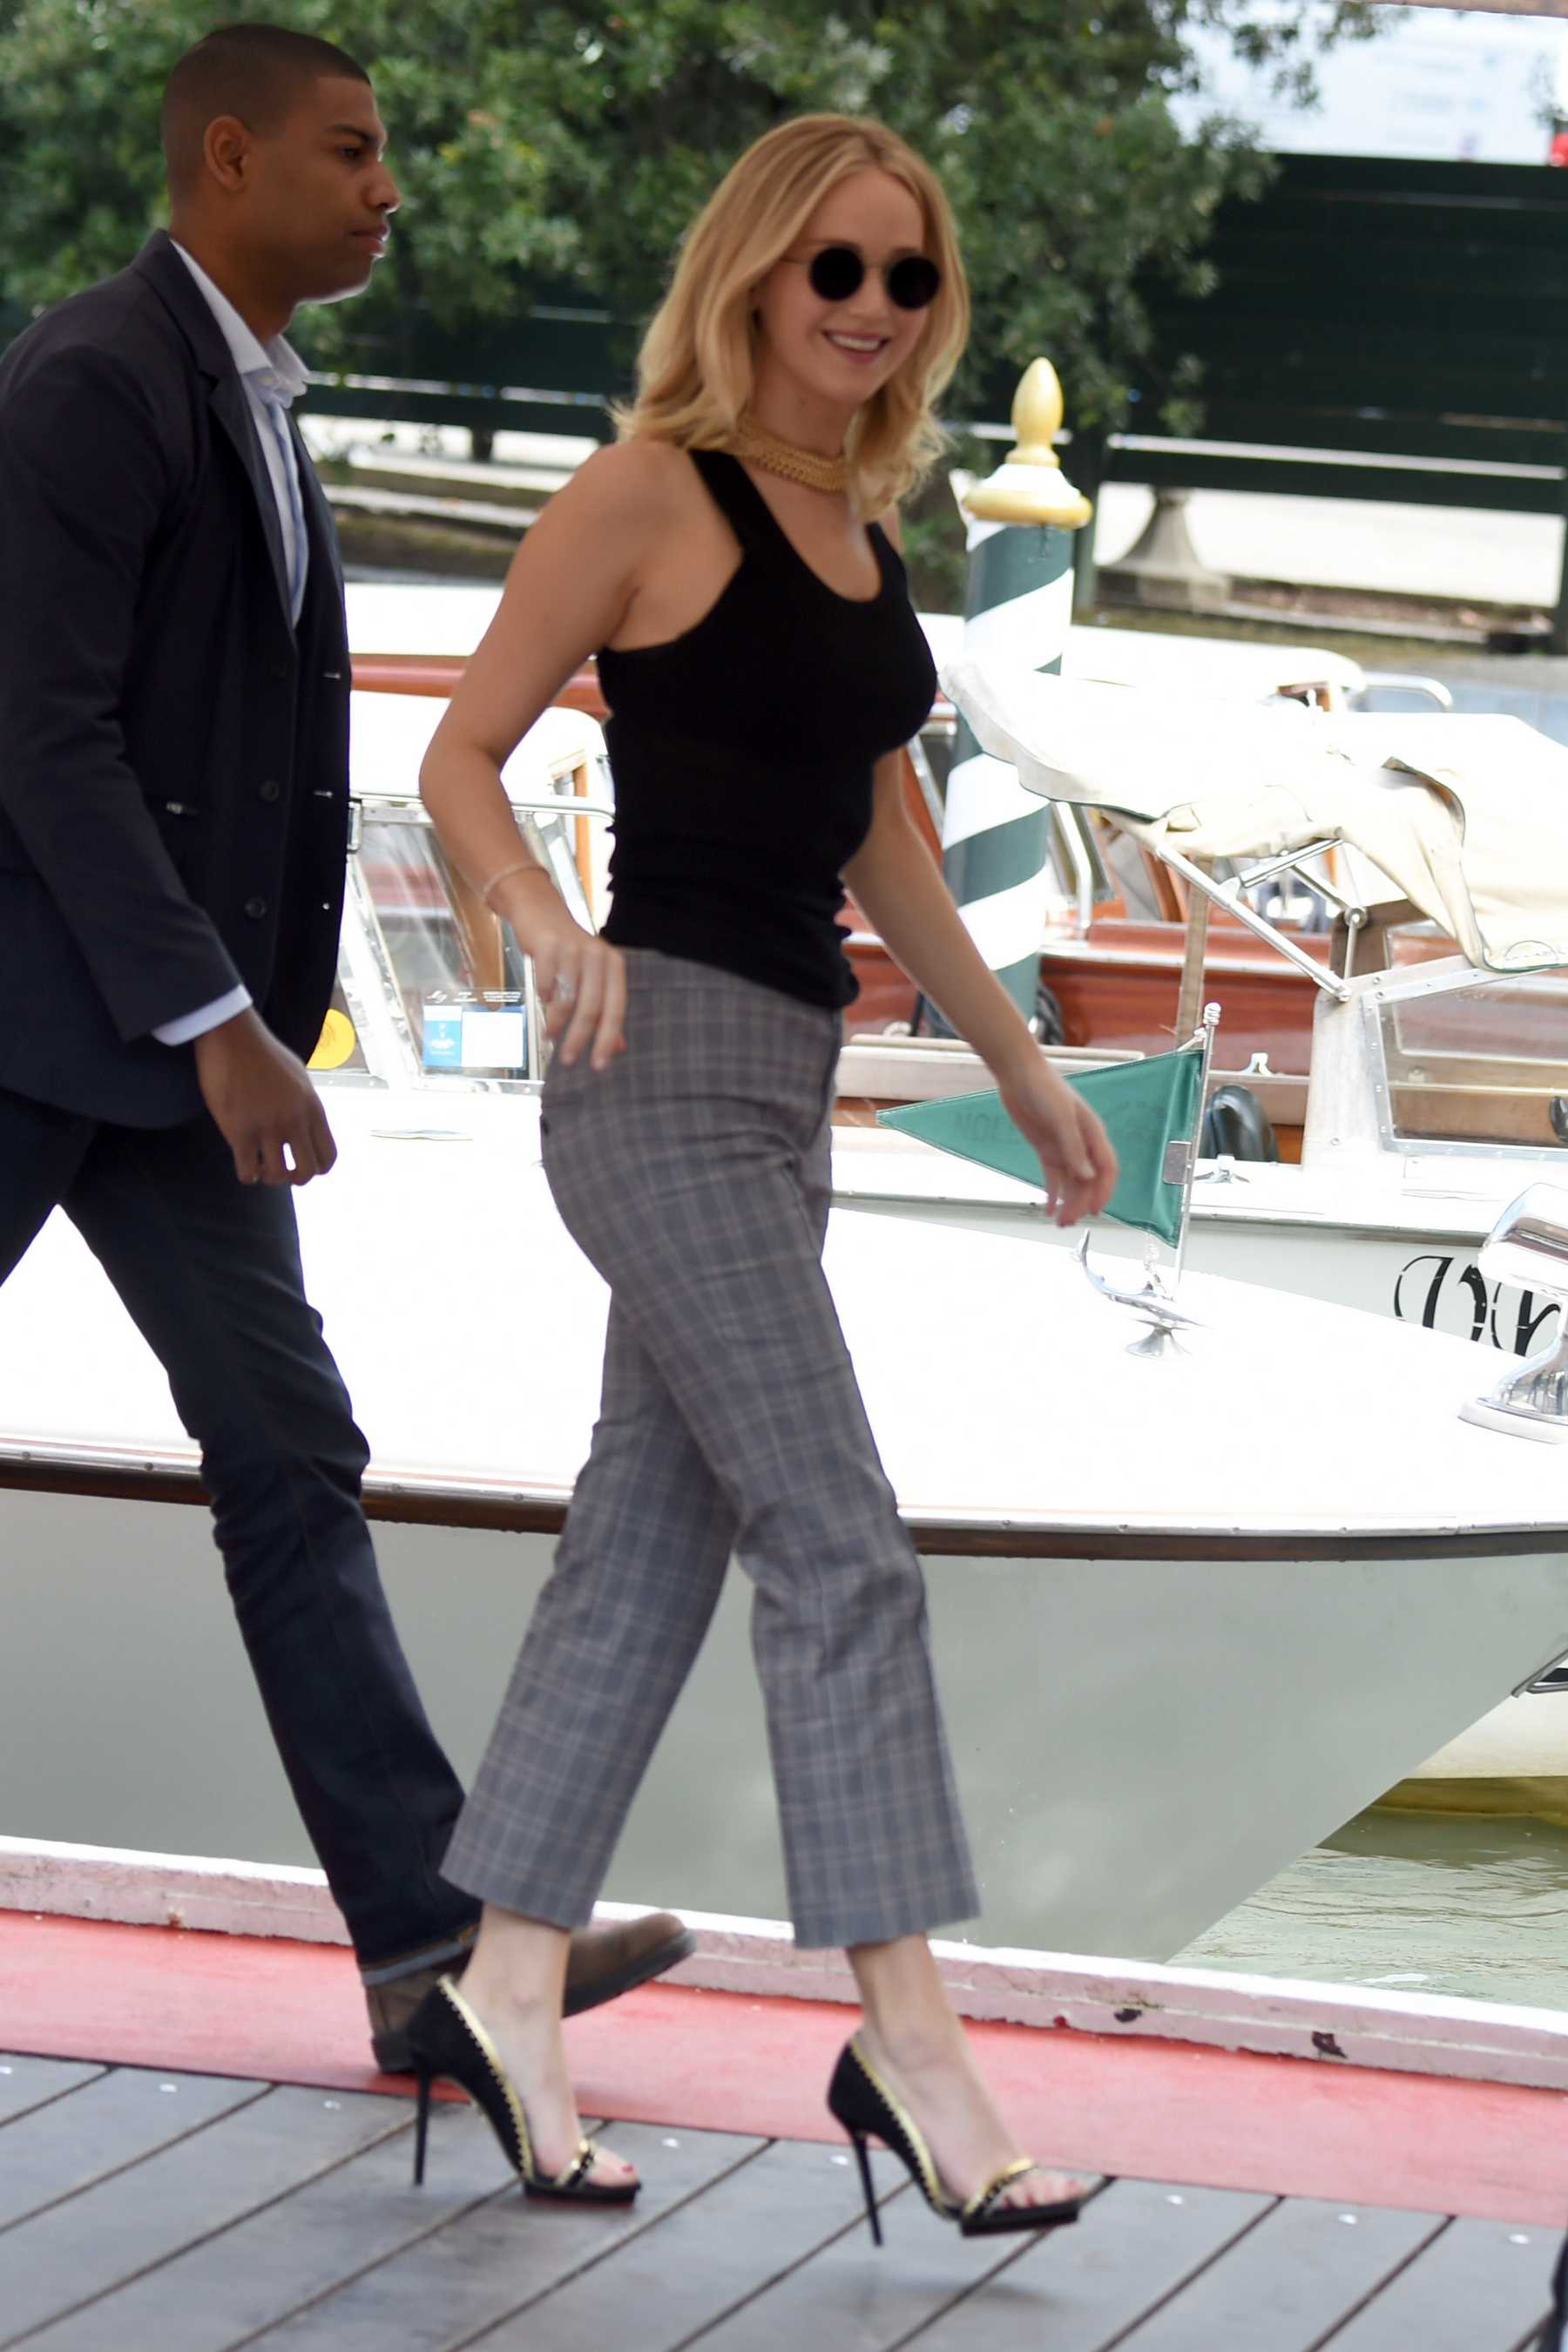 http://jenniferlawrencedaily.com/gallery/albums/userpics/10001/Jennifer_Lawrence_-_Arrives_at_Excelsior_Hotel_during_the_74th_Venice_Film_Festival_in_Italy_on_September_5-02~0.jpg